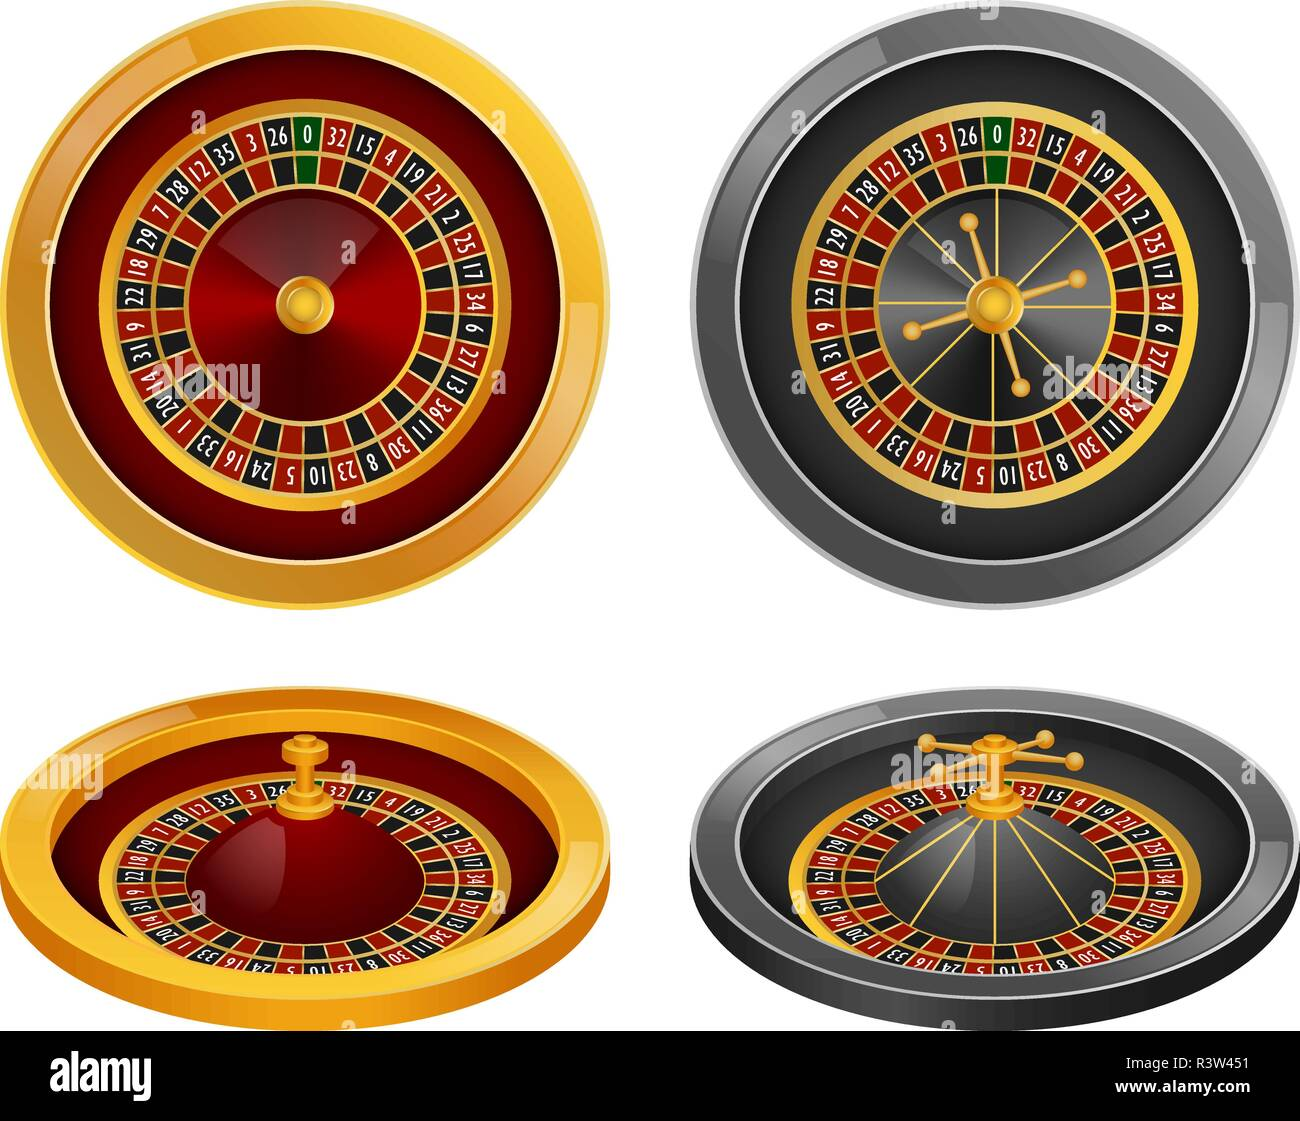 Roulette wheel fortune spin game mockup set. Realistic illustration of 4 roulette wheel fortune spin game mockups for web - Stock Vector